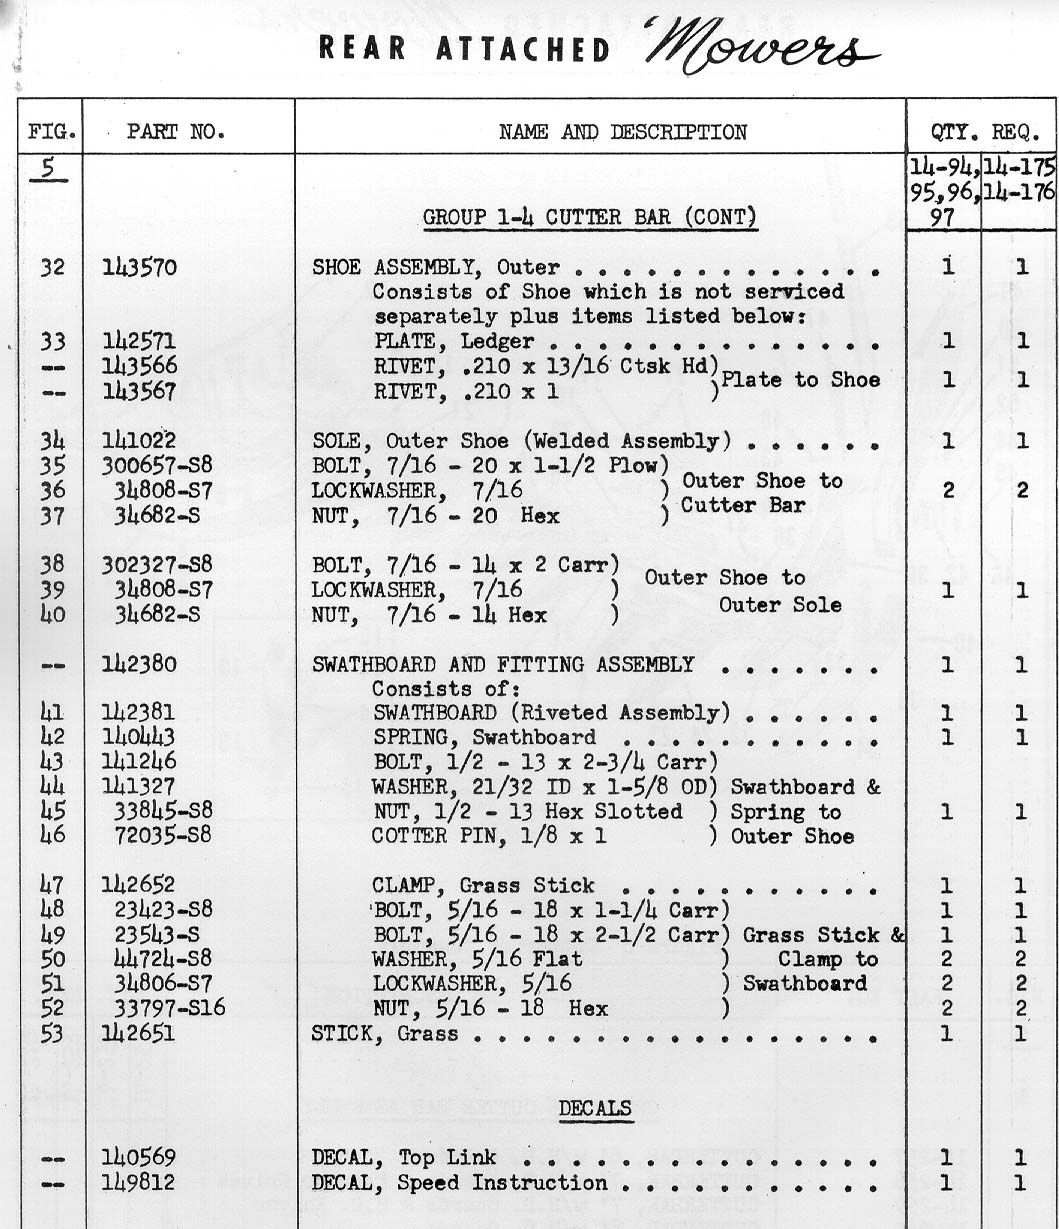 Page Cutter Bar Parts List on 1992 Chevy Truck Wiring Diagram Vss